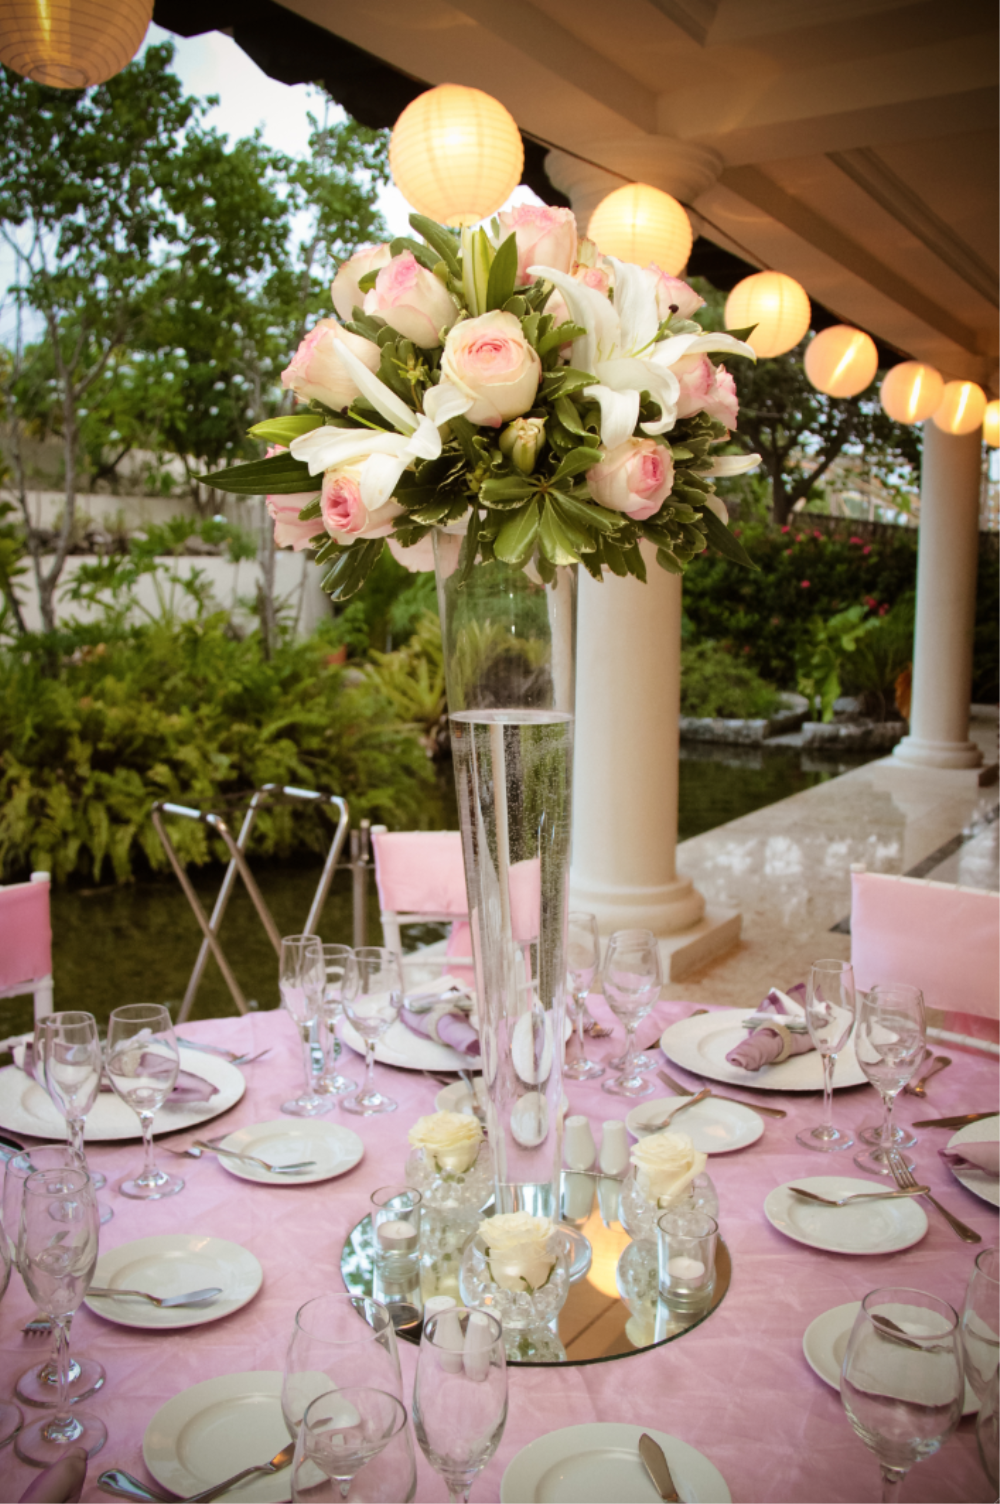 Decorated tables with accents in pink and vanilla white